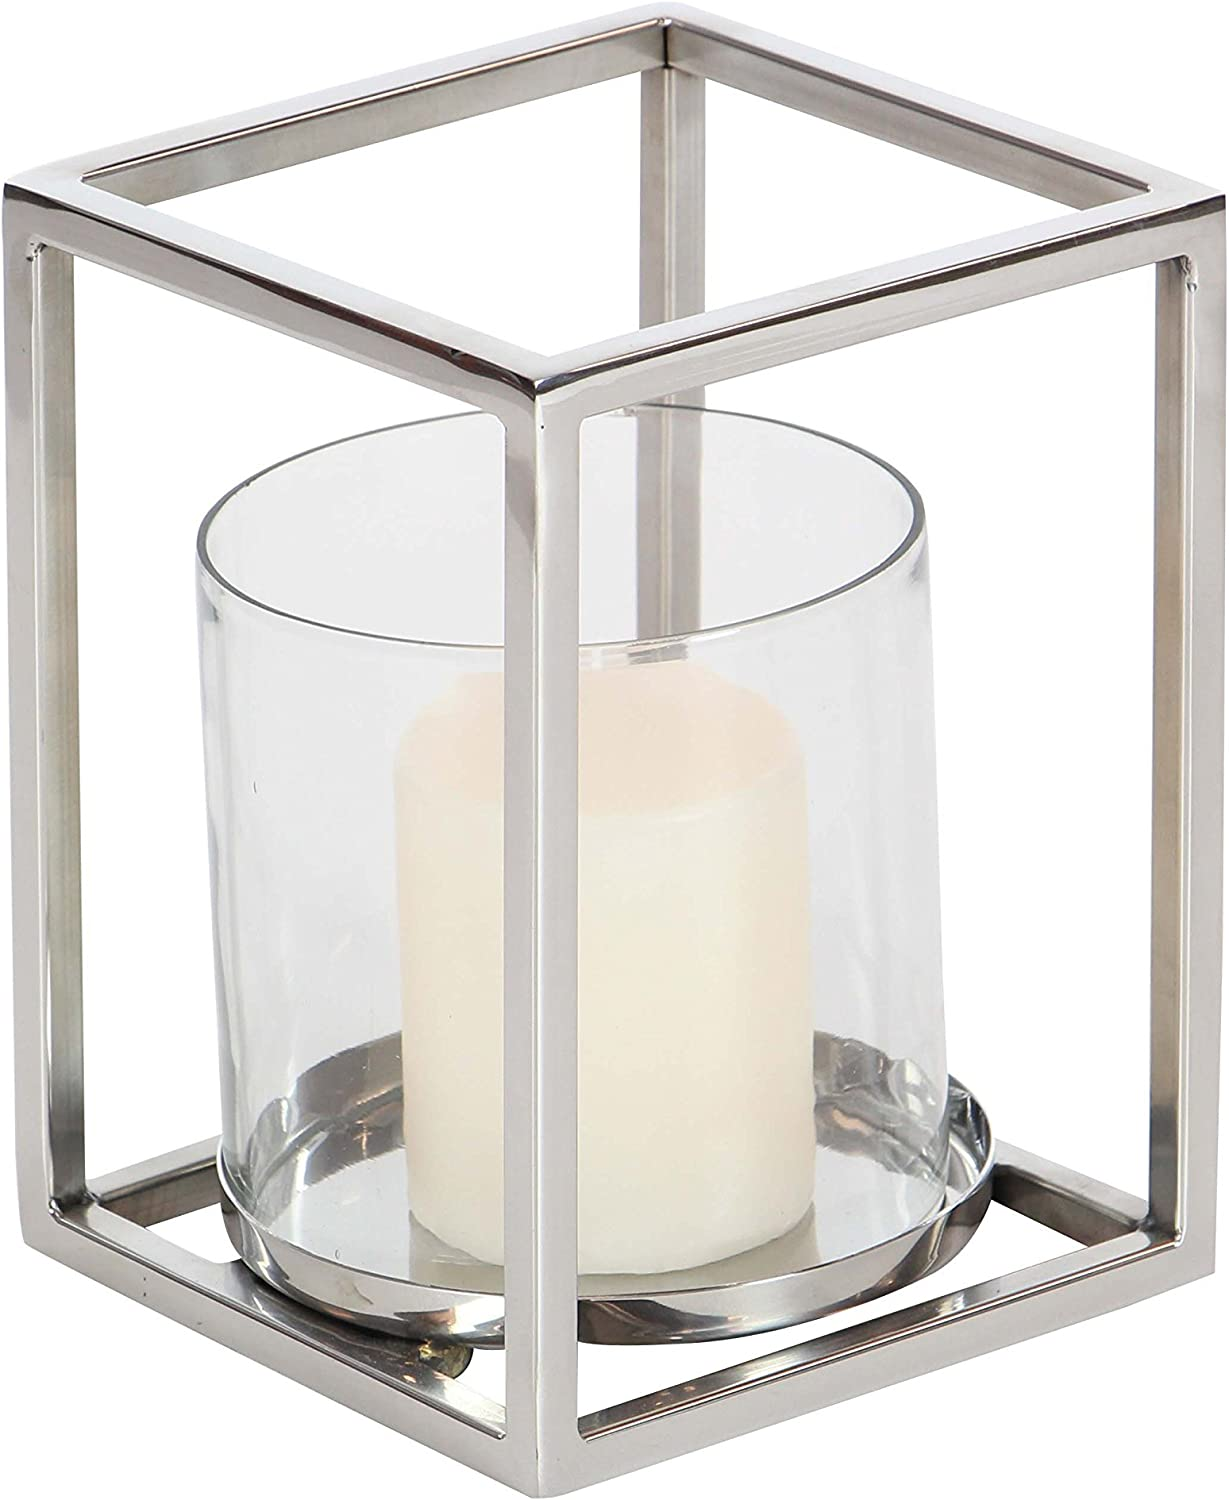 MODERN SILVER BRUSHED ALUMINUM CANDLE HOLDER CLEAR GLASS GLOBES CONCRETE BASE